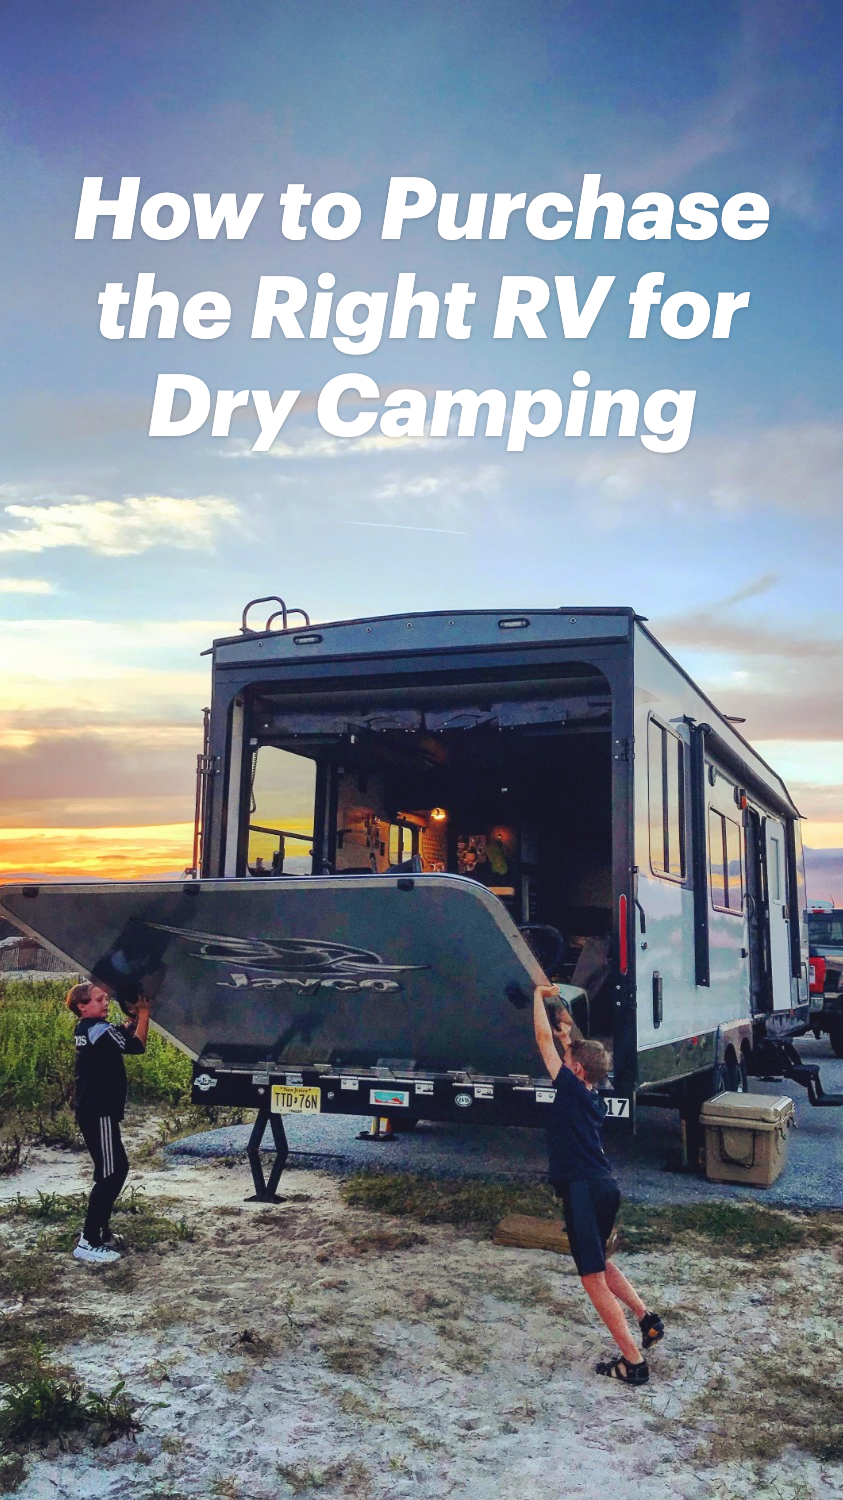 How to Purchase the Right RV for Dry Camping